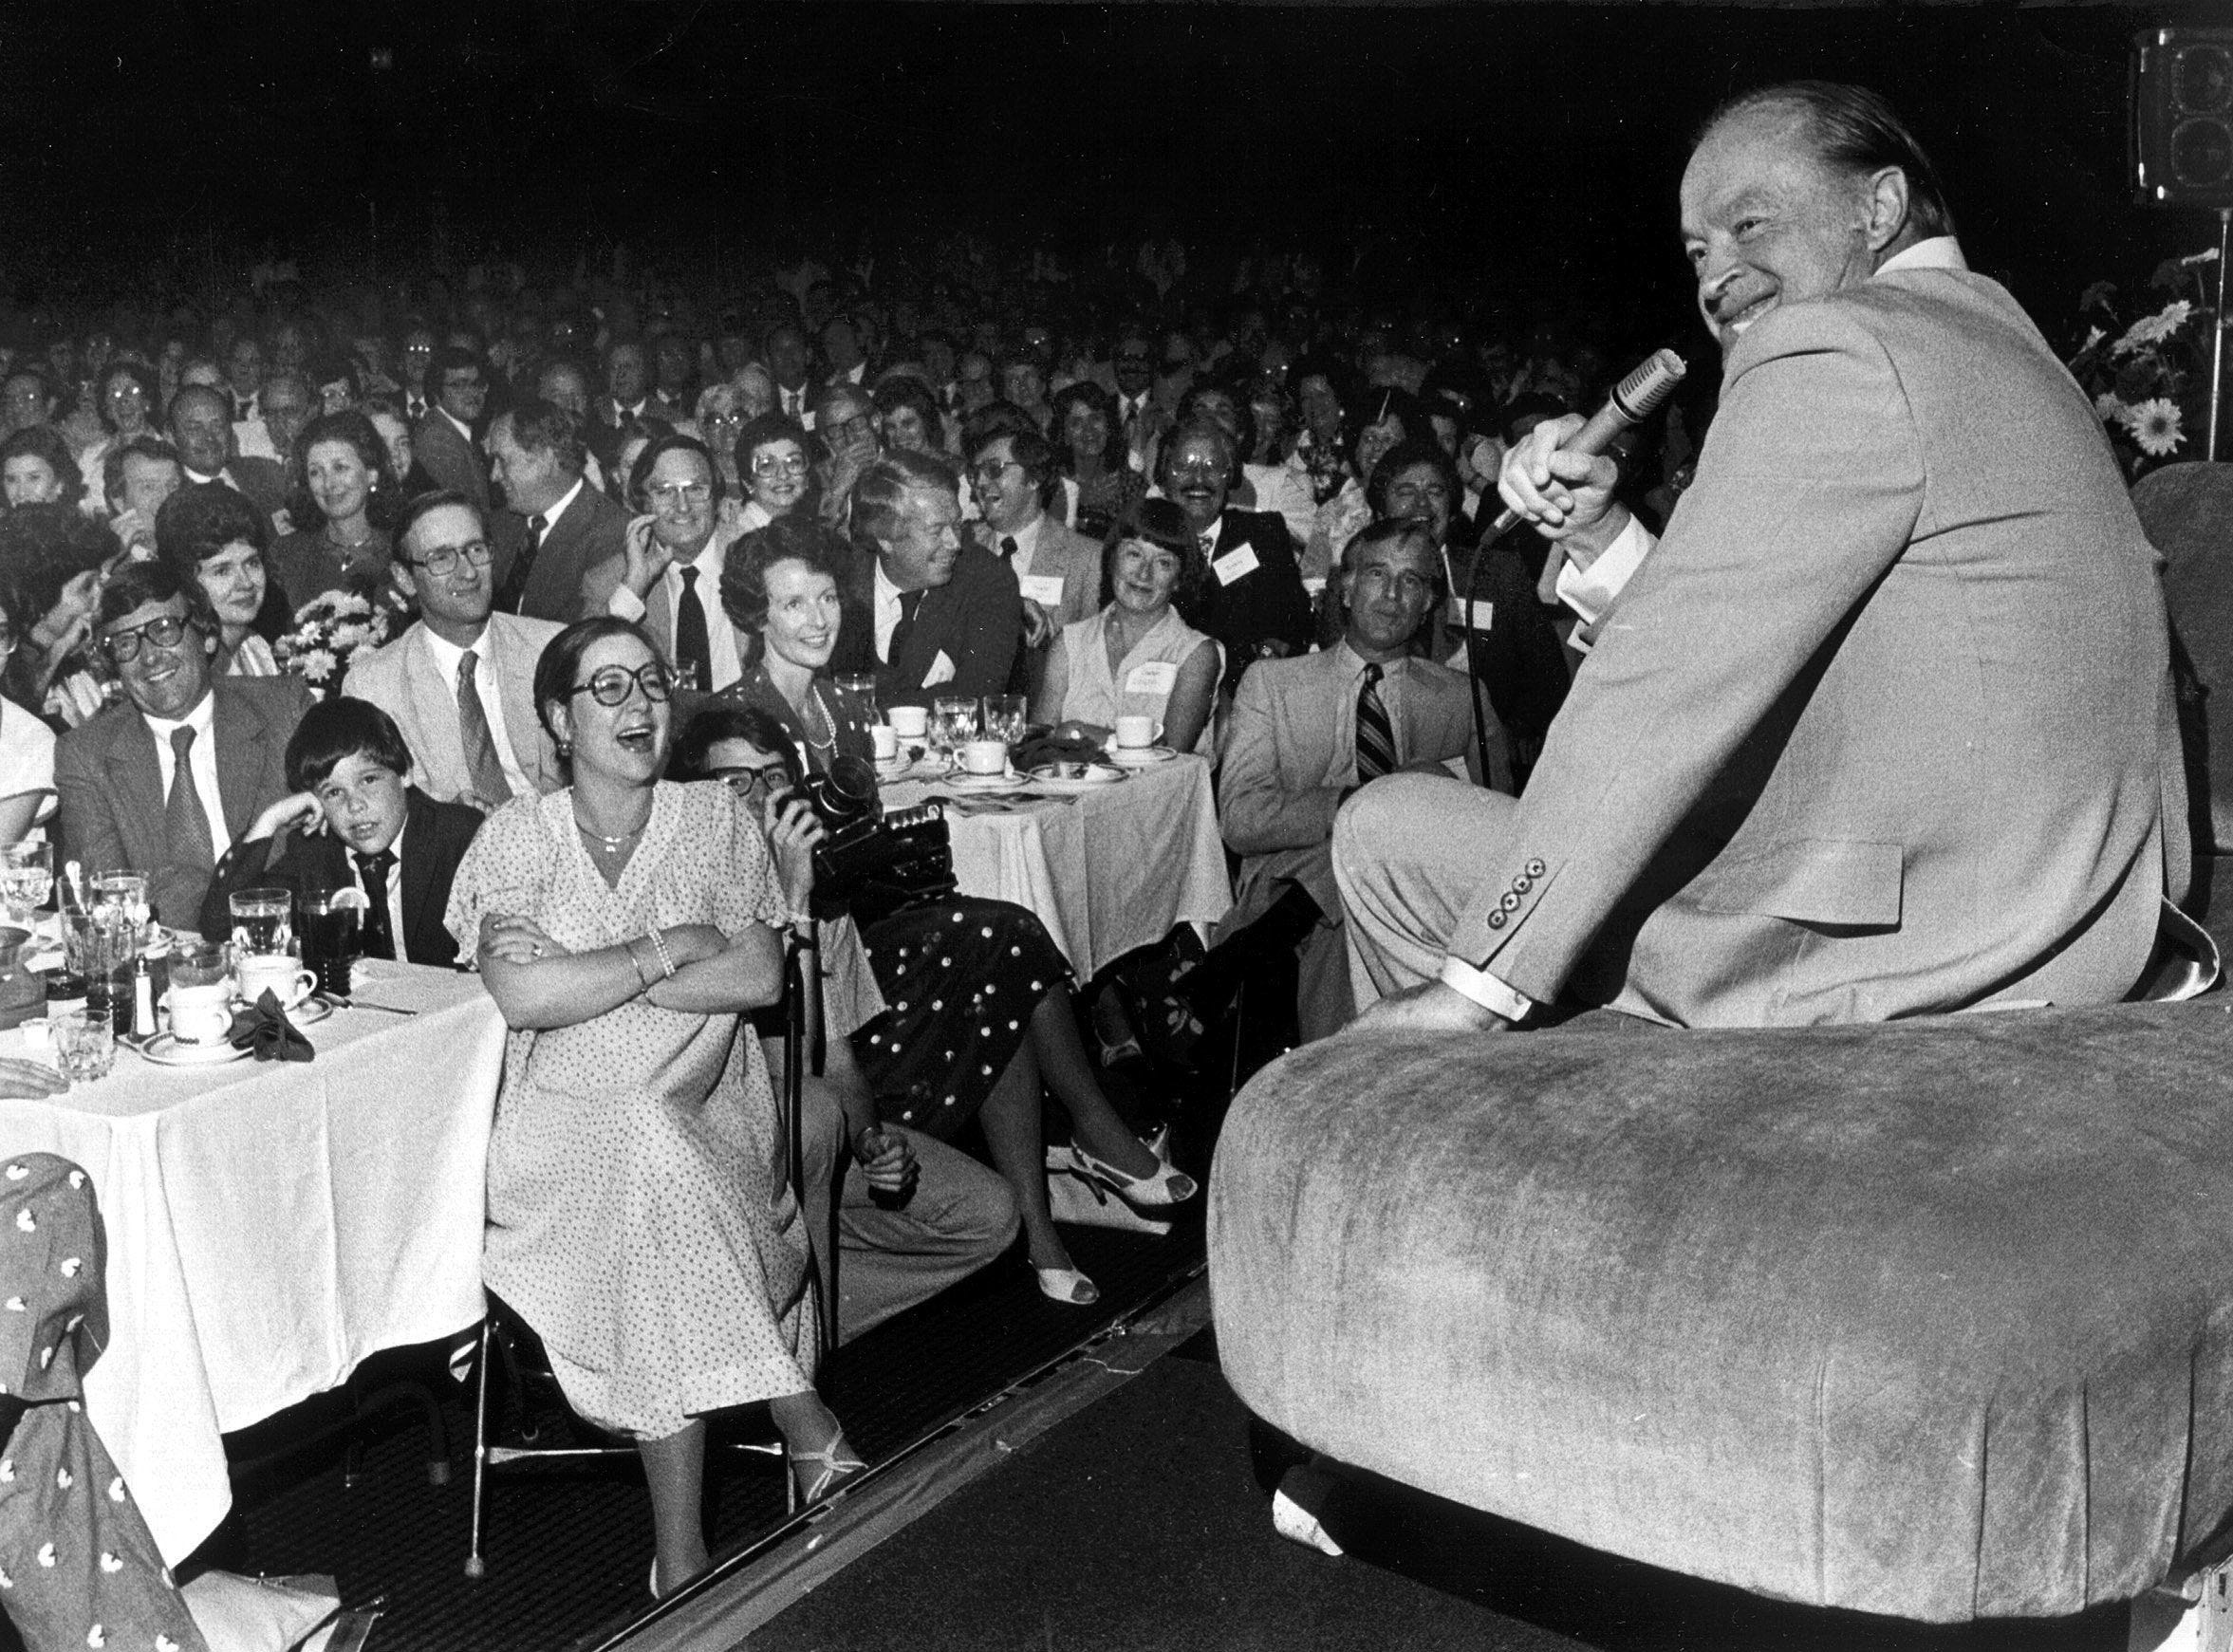 Bob Hope shares a laugh with the American Cotton Shippers Association during a performance at the Hyatt-Regency Hotel on May 11, 1979.